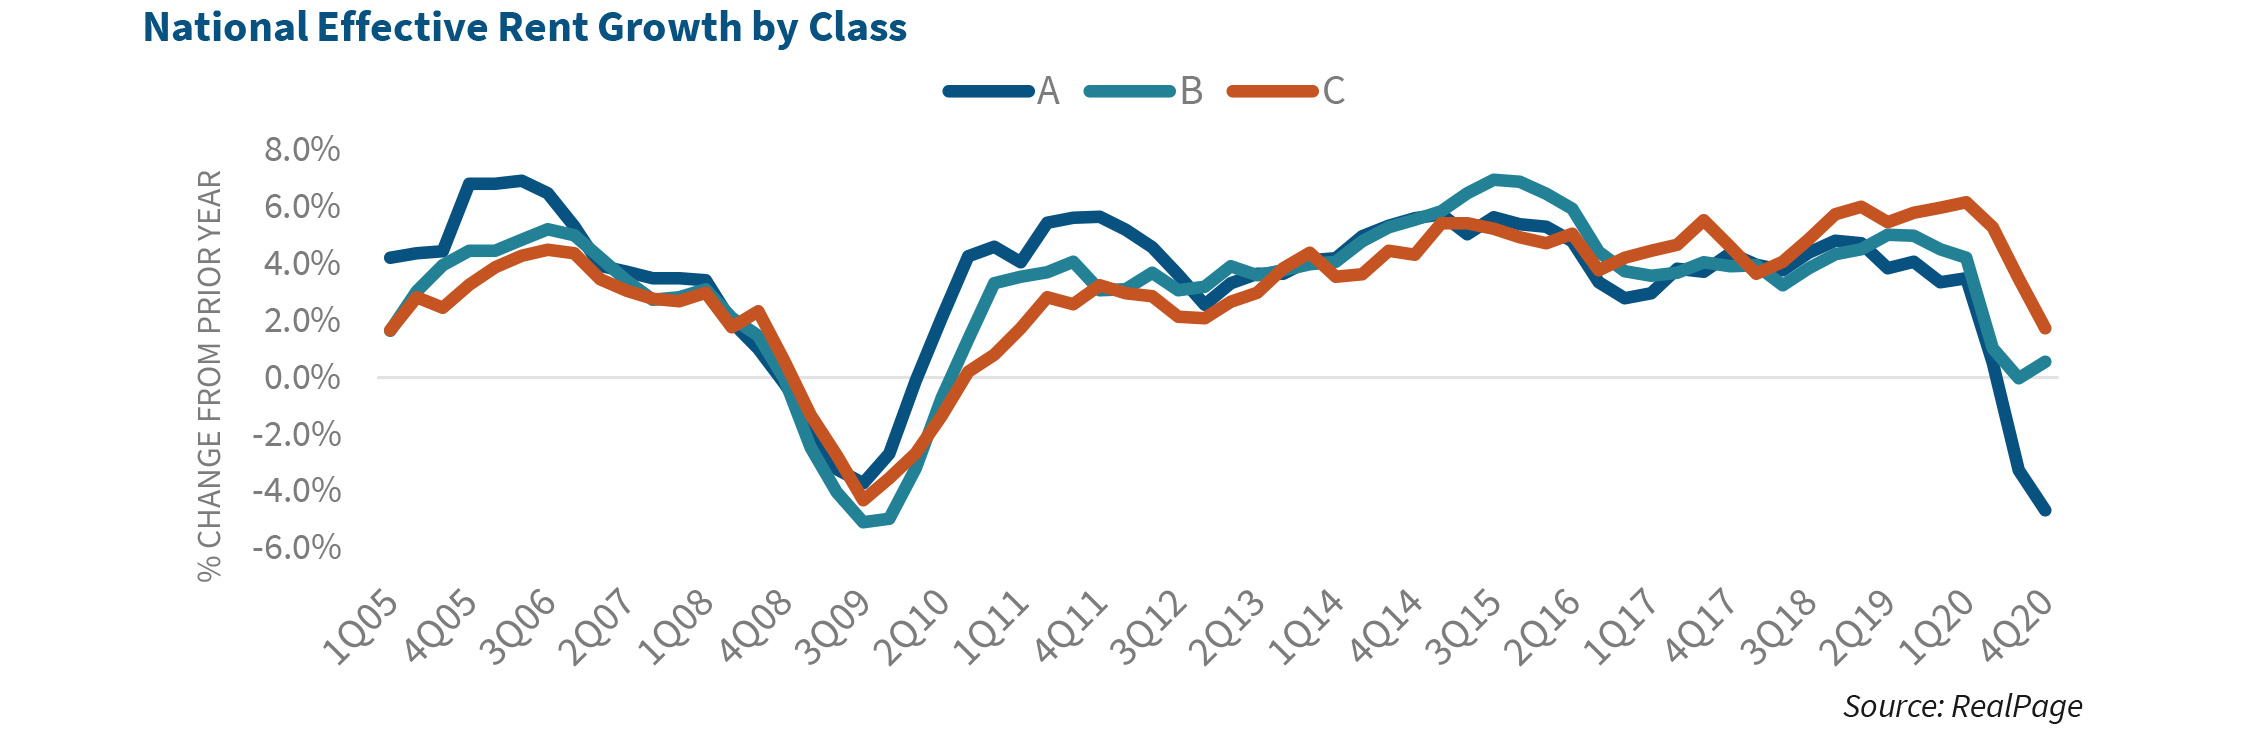 National Effective Rent Growth by Class